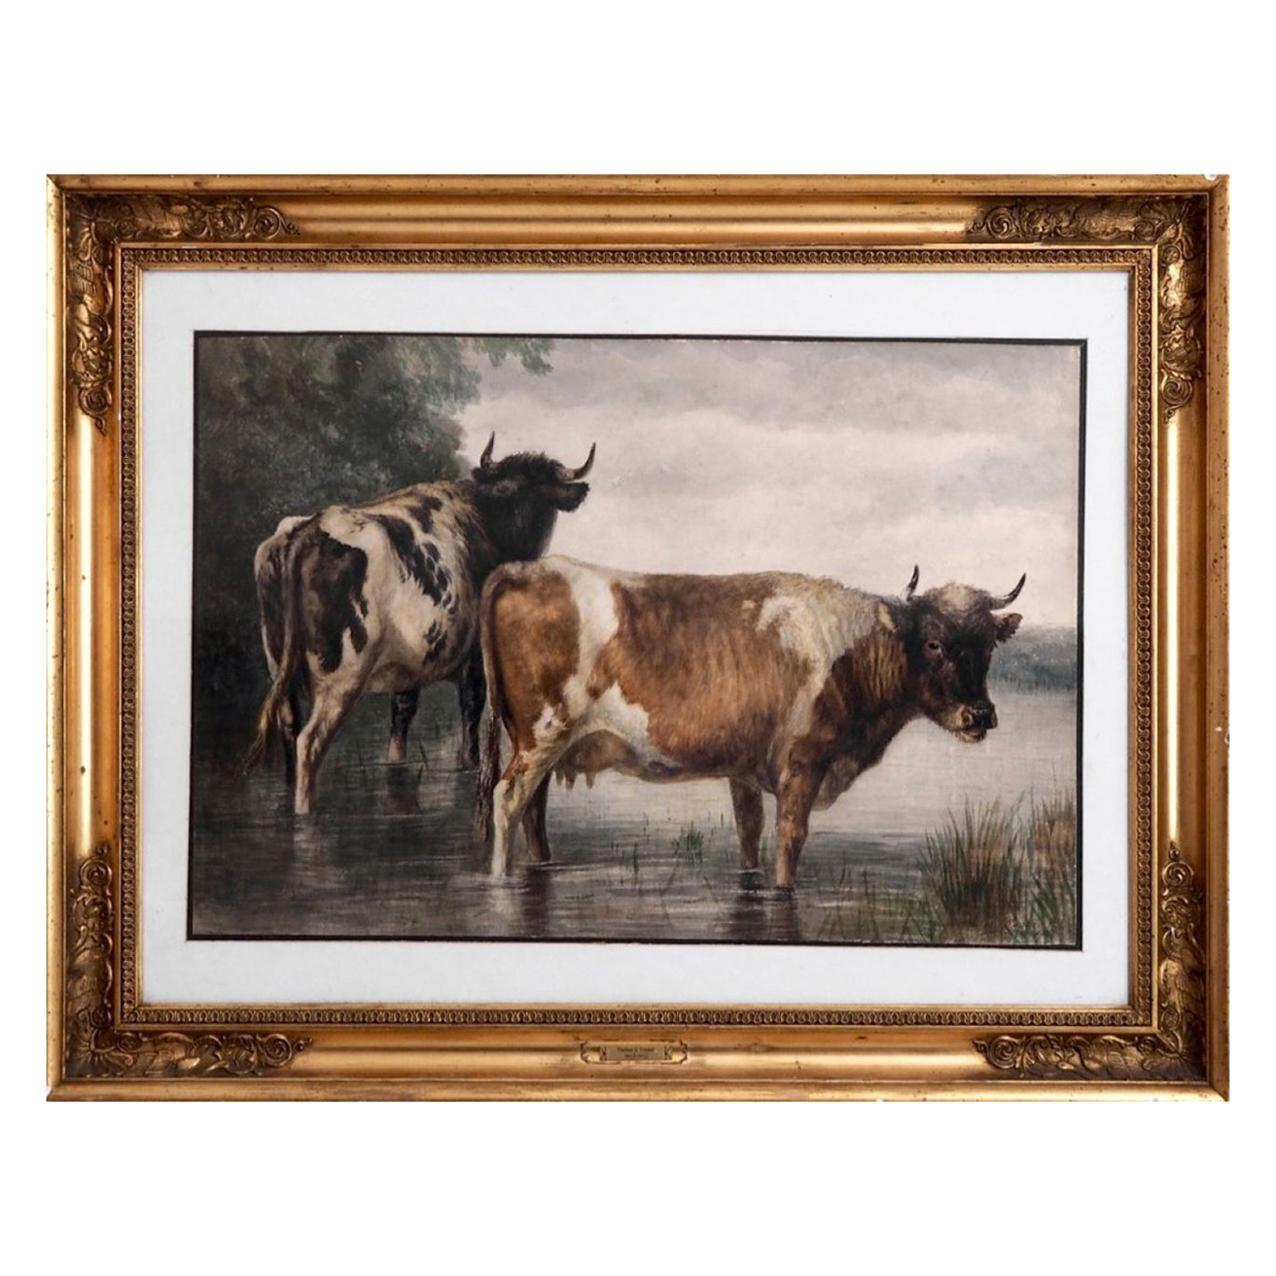 Watercolor by English Artist Thomas S. Cooper in Original Frame